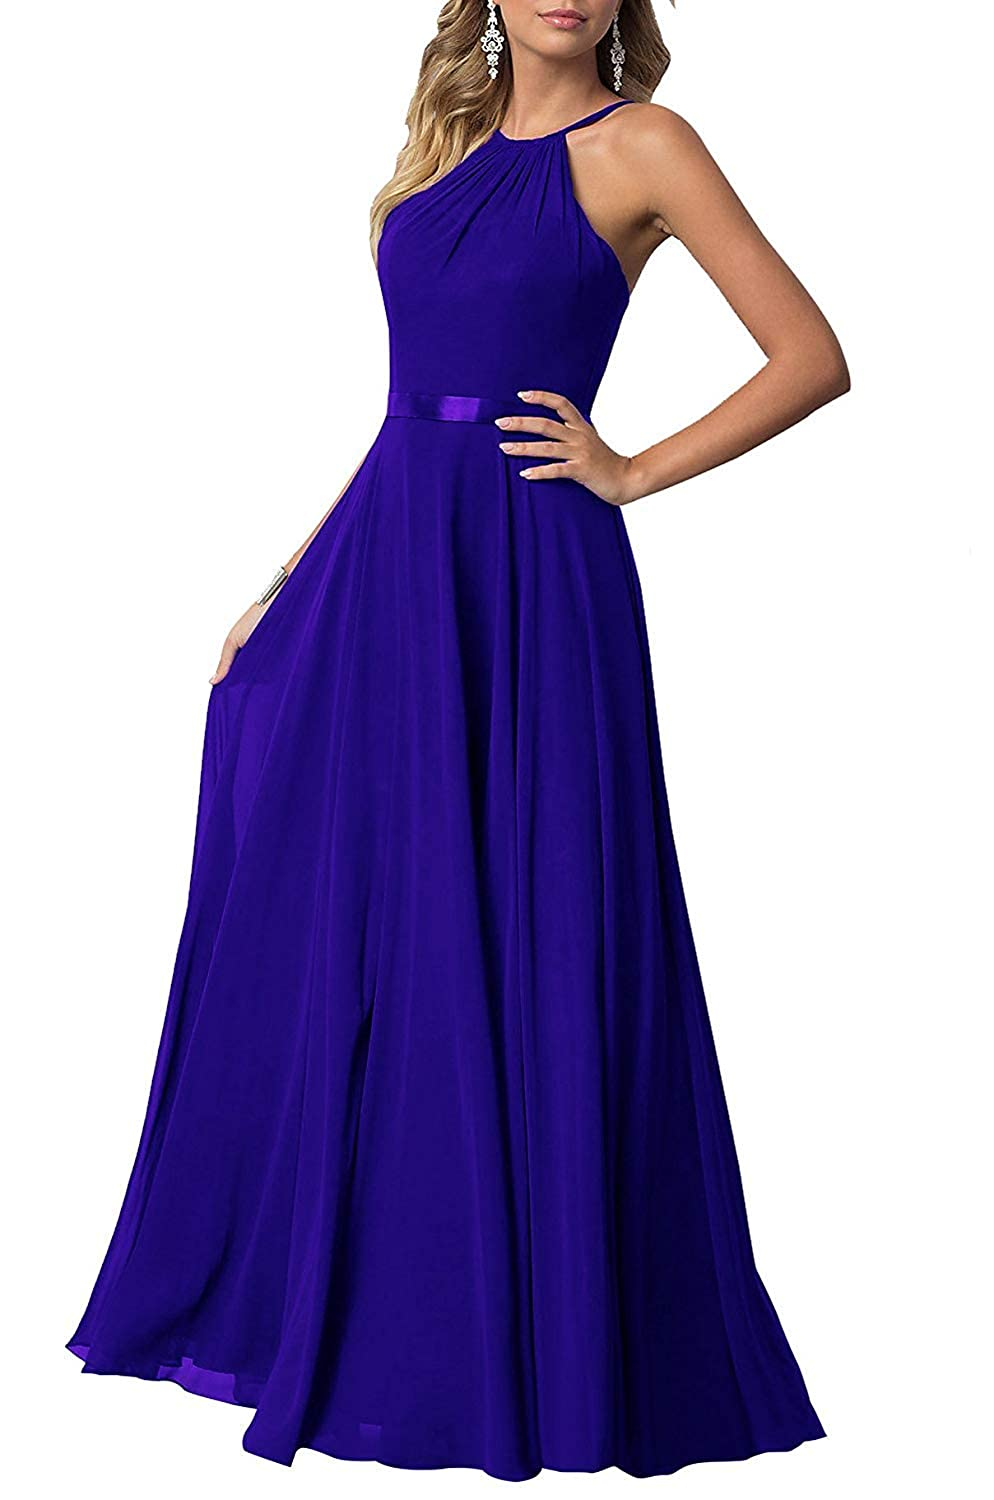 Royal bluee YUSHENGSM Long HighNeck Spaghetti Strap Prom Dresses Party Bridesmaid Dress Maxi Gowns